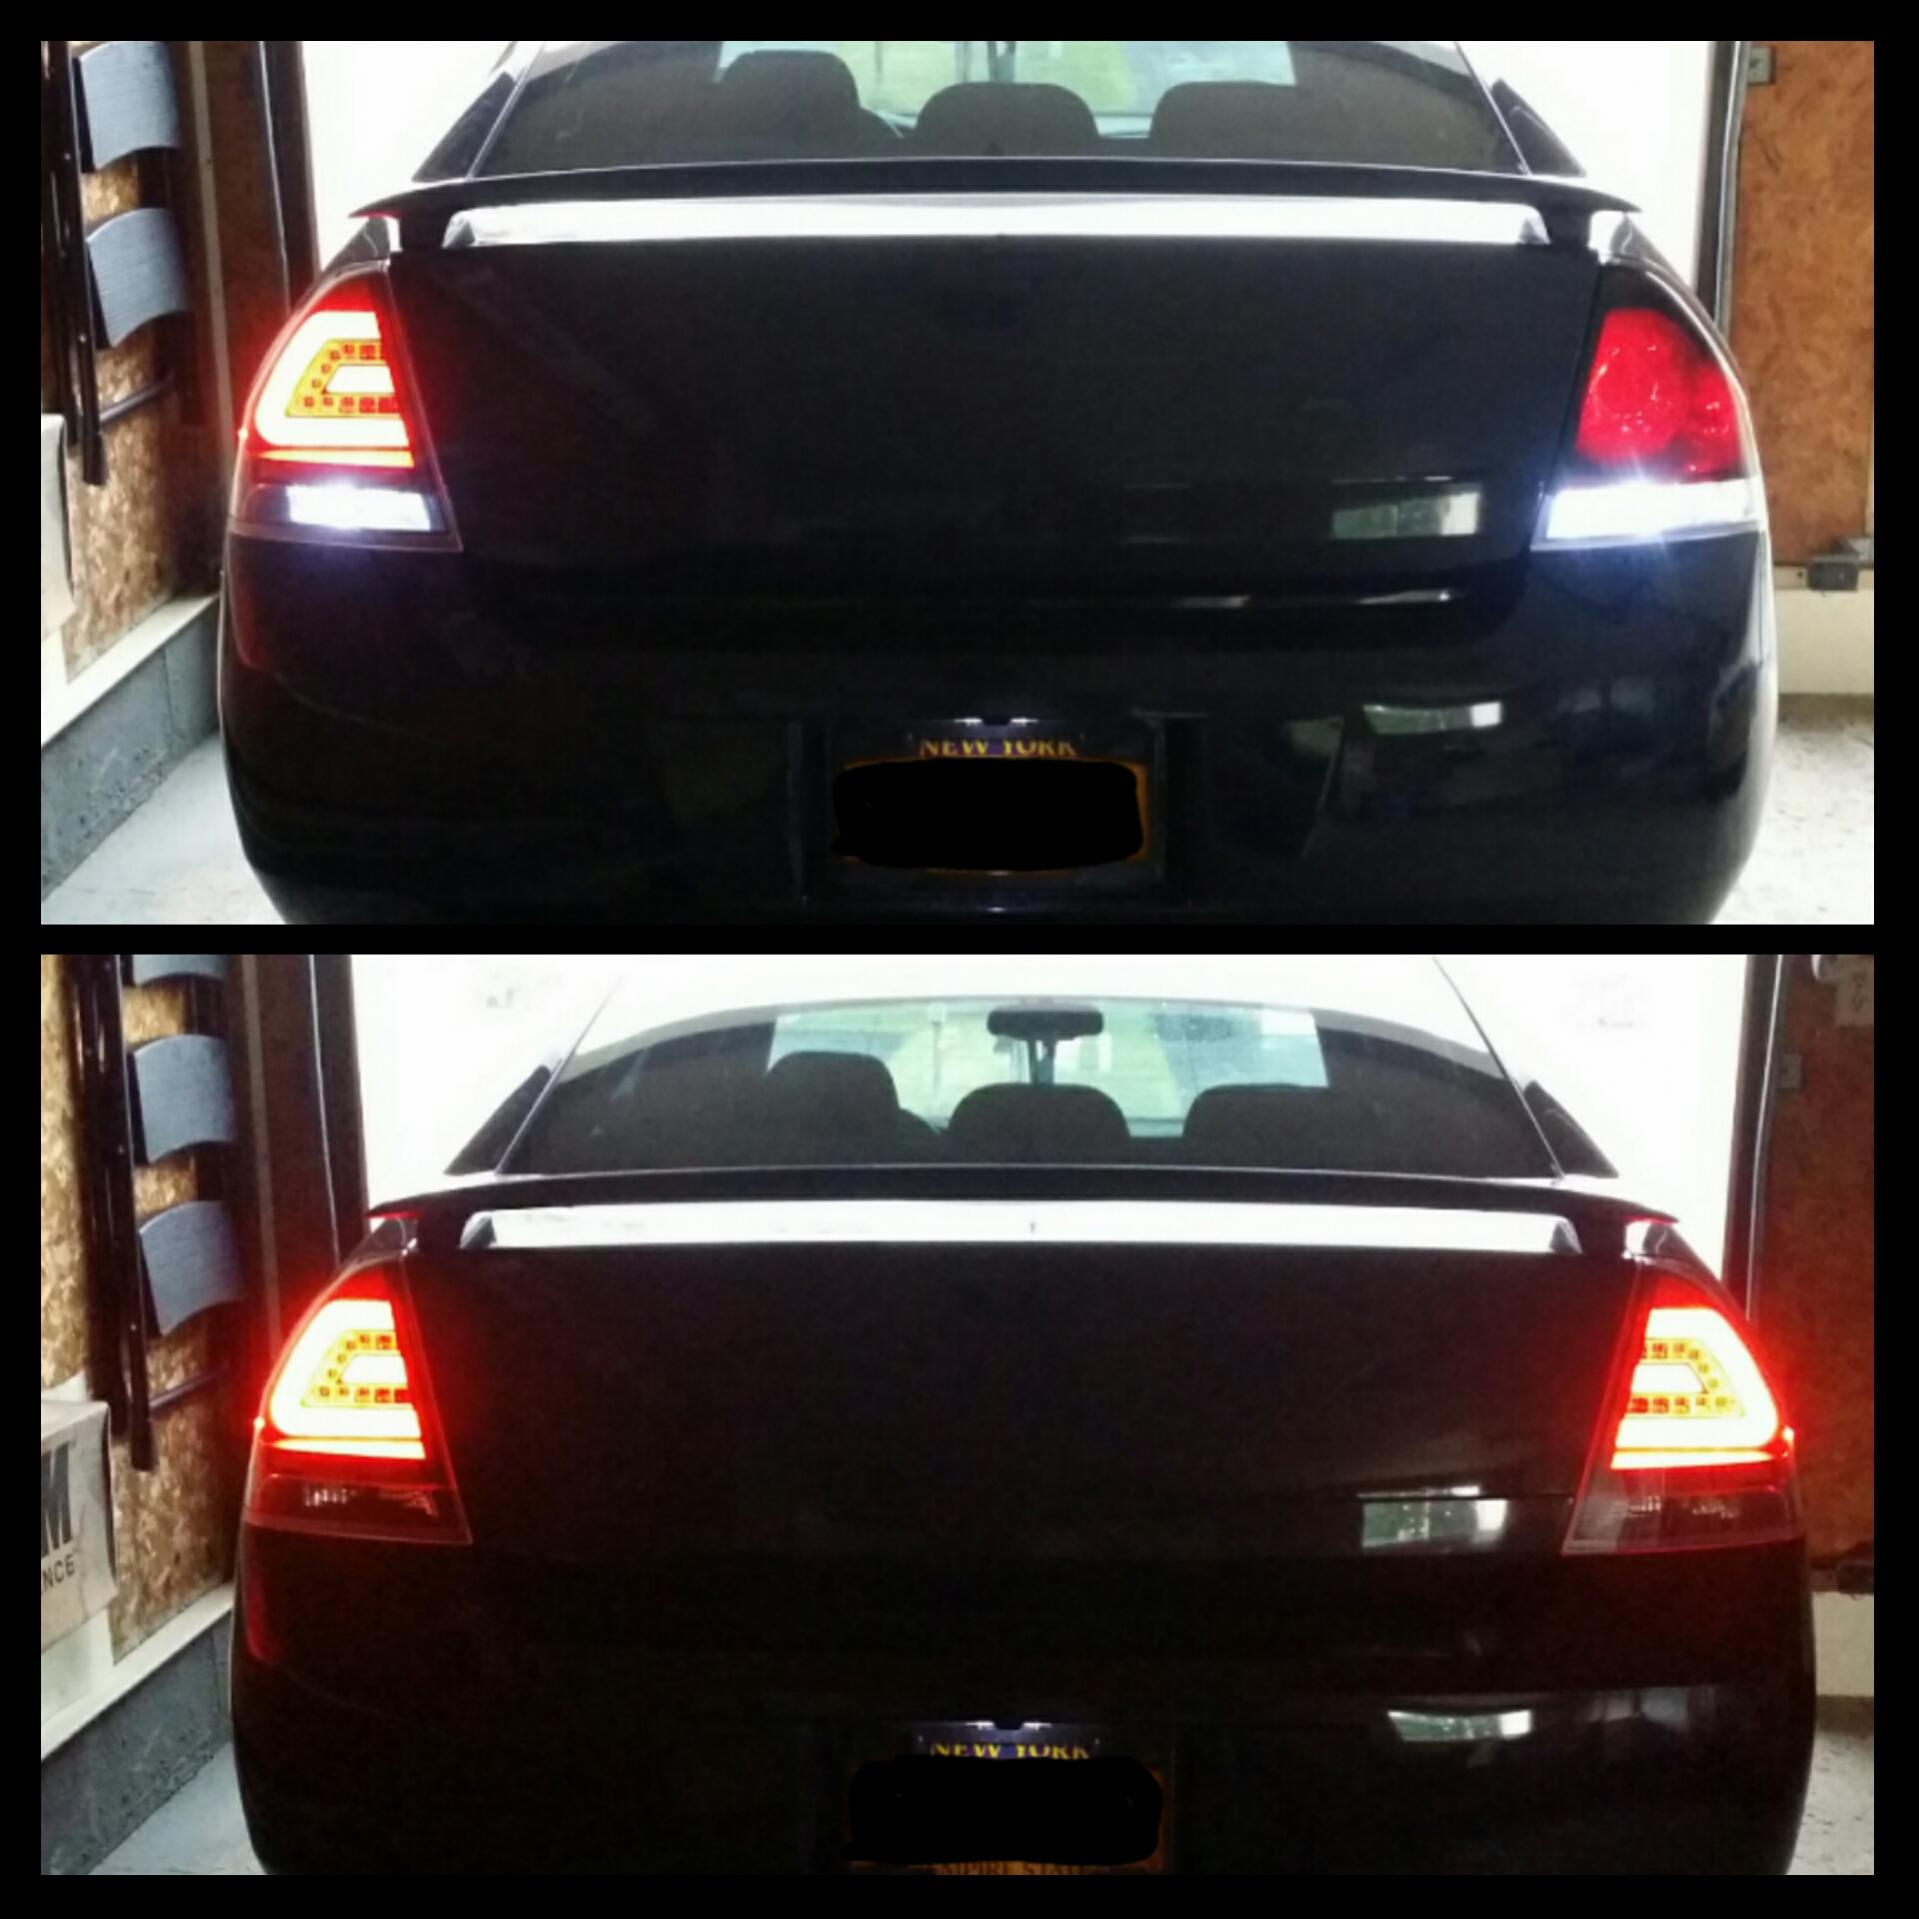 Chevrolet Cobalt Radio C Wiring Connector moreover D Ls Performance O also Chevrolet Impala Convertible Steering Wheel together with Chevrolet Impala Lt Sedan Instrument Panel in addition D Sold Ss But Got Ltz Fully Loaded Impala Black Rims. on 07 chevy impala ls